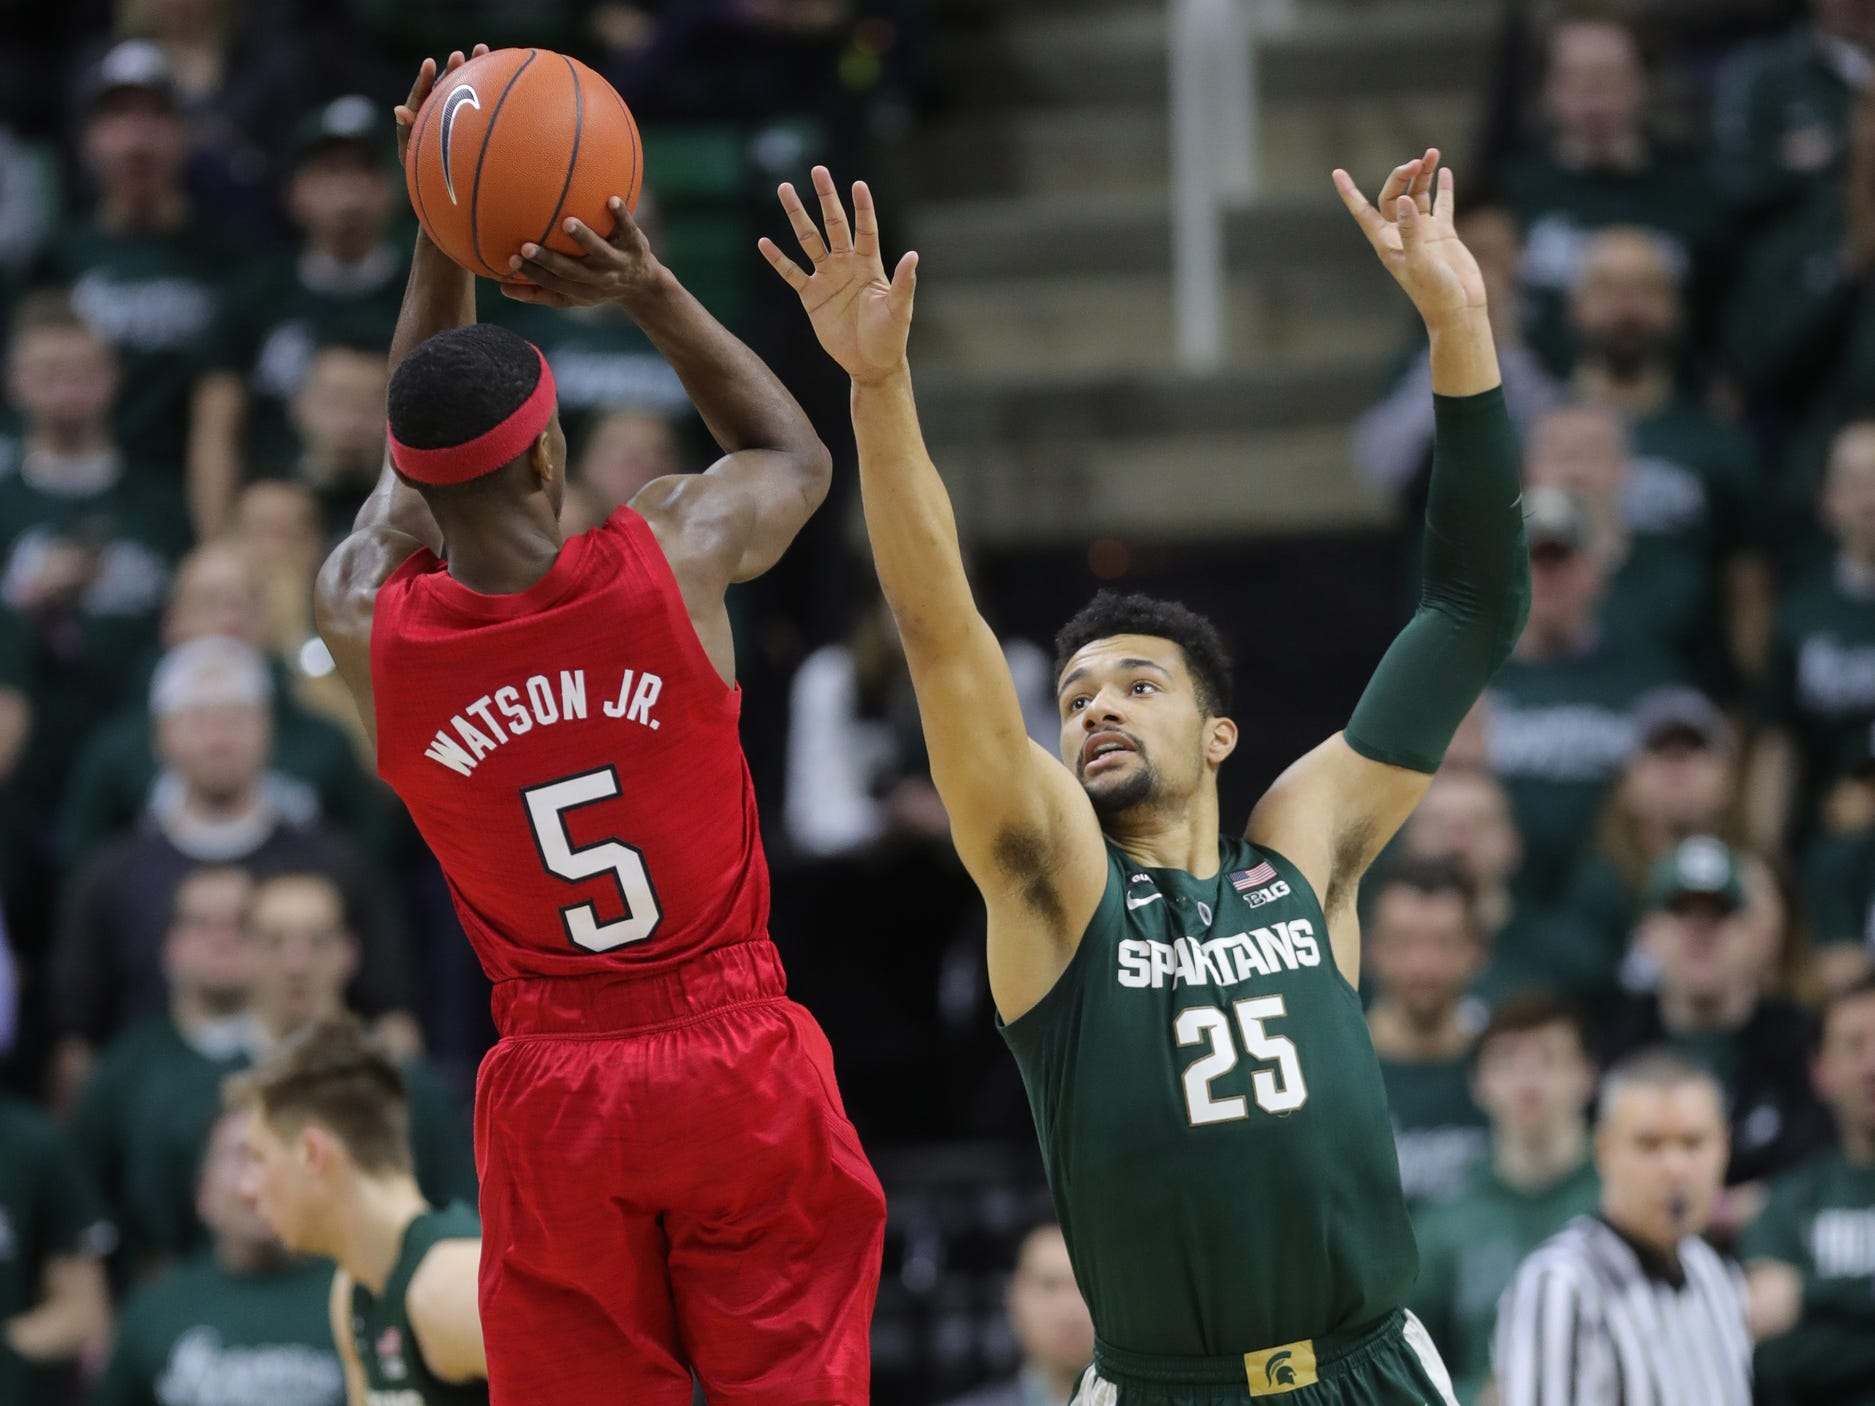 Michigan State forward Kenny Goins defends against Nebraska guard Glynn Watson during first half action Tuesday, March 5, 2019 at the Breslin Center in East Lansing, Mich.